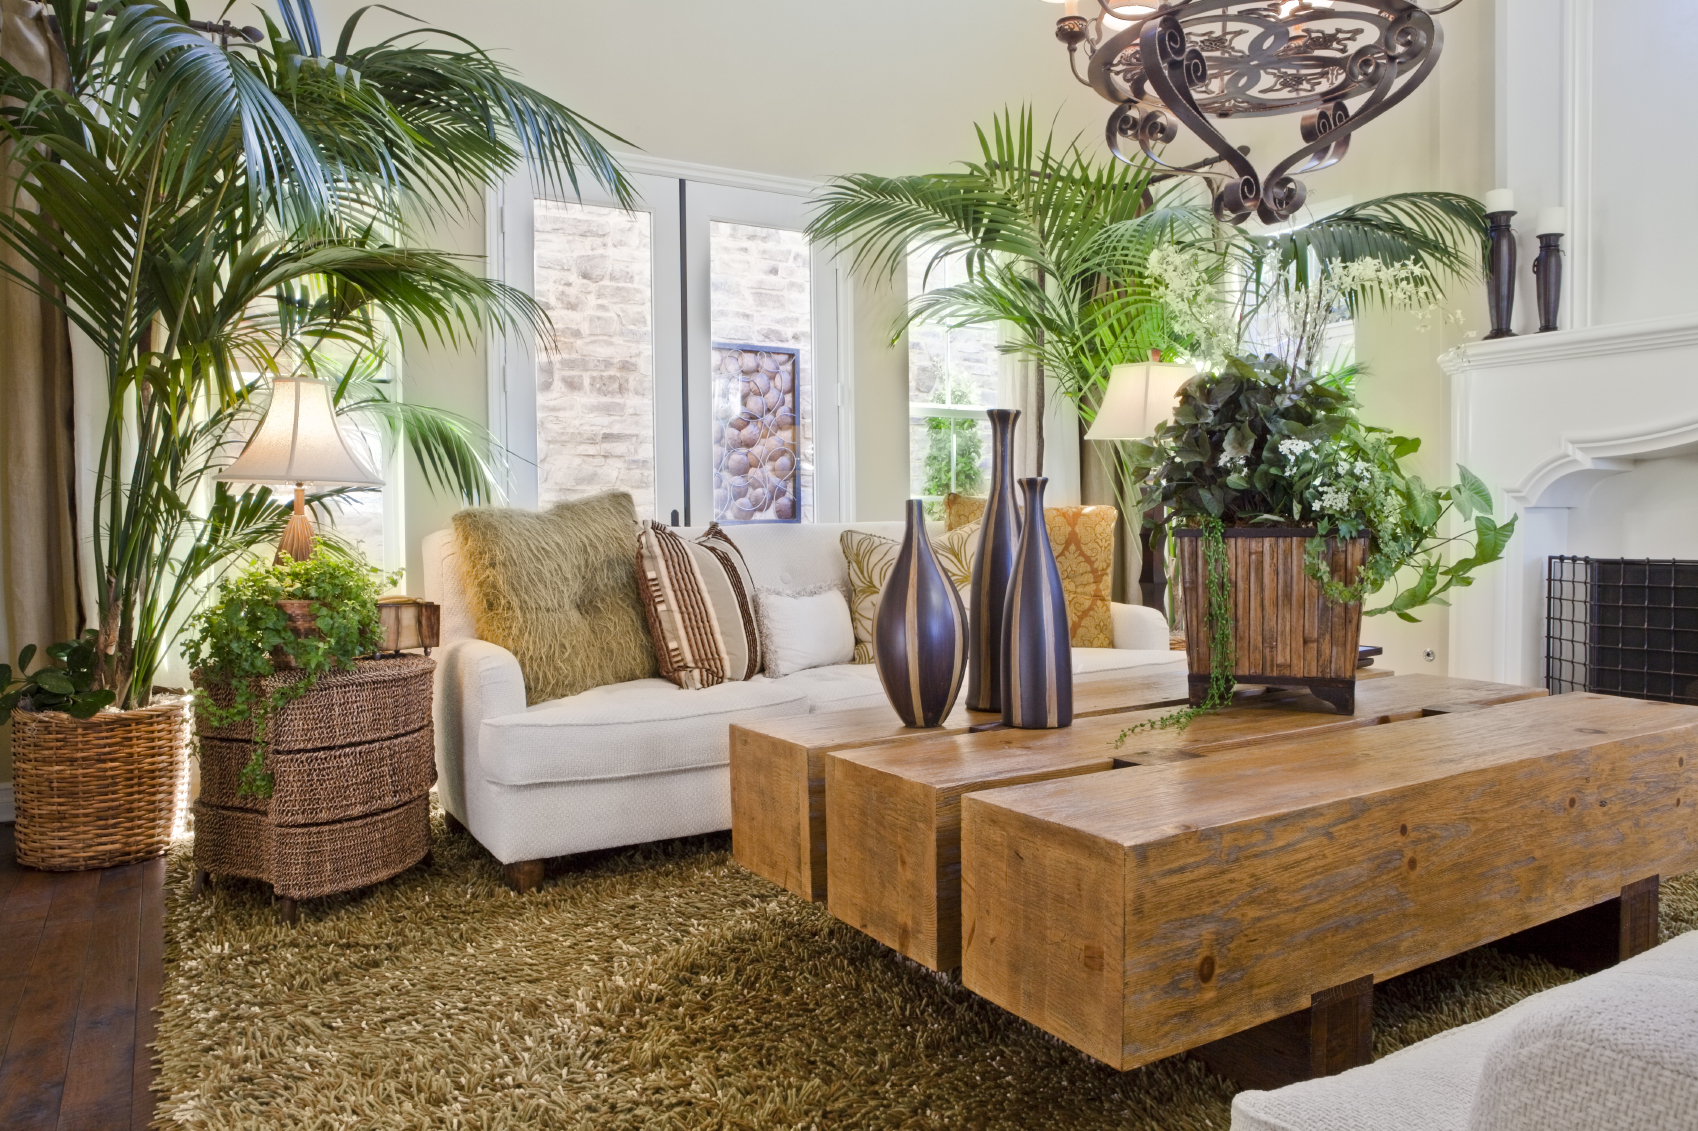 Decoraci n con plantas de interior univision for Decoracion con plantas en living